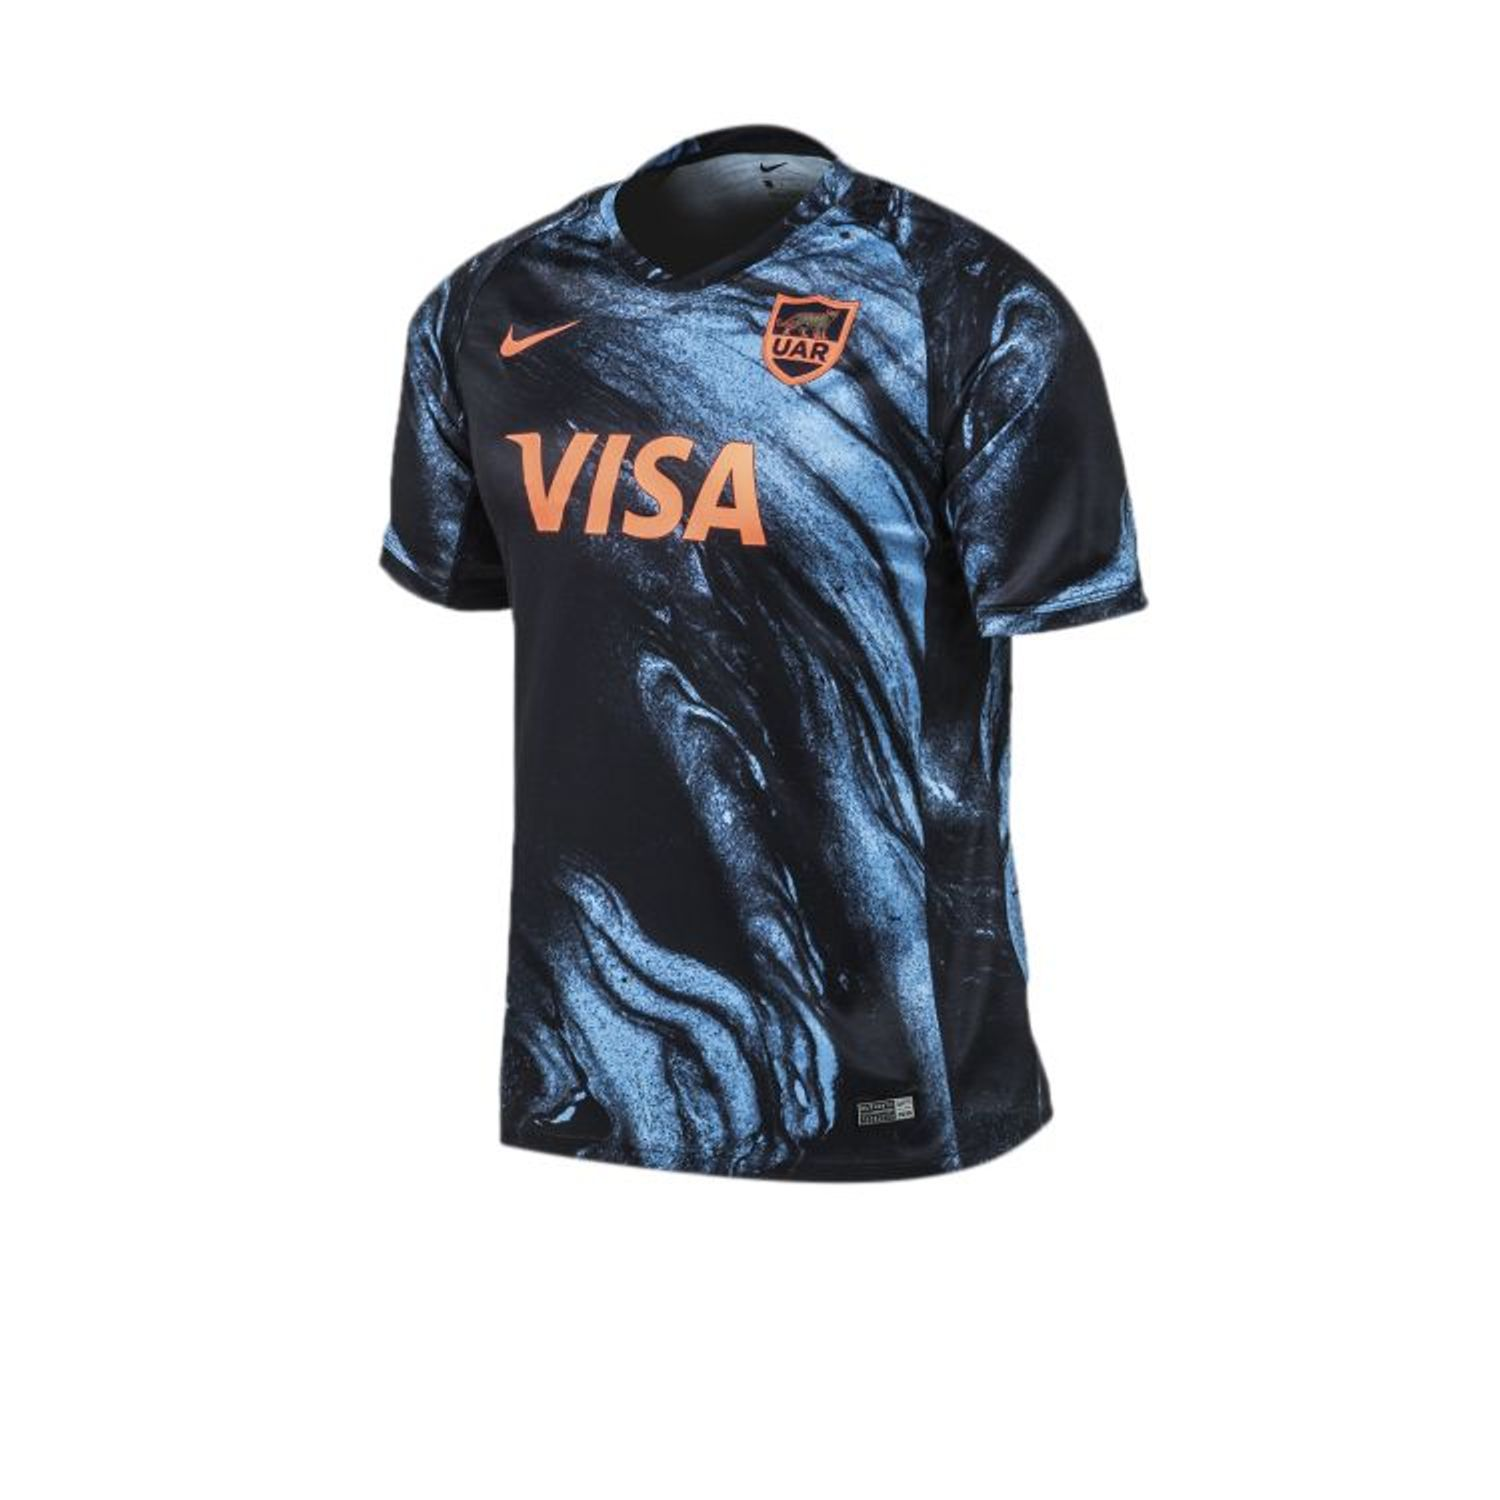 22cb34509 510020922297451-1  510020922297451-1. NIKE. CAMISETA UAR PUMAS ALTERNATIVA  STADIUM